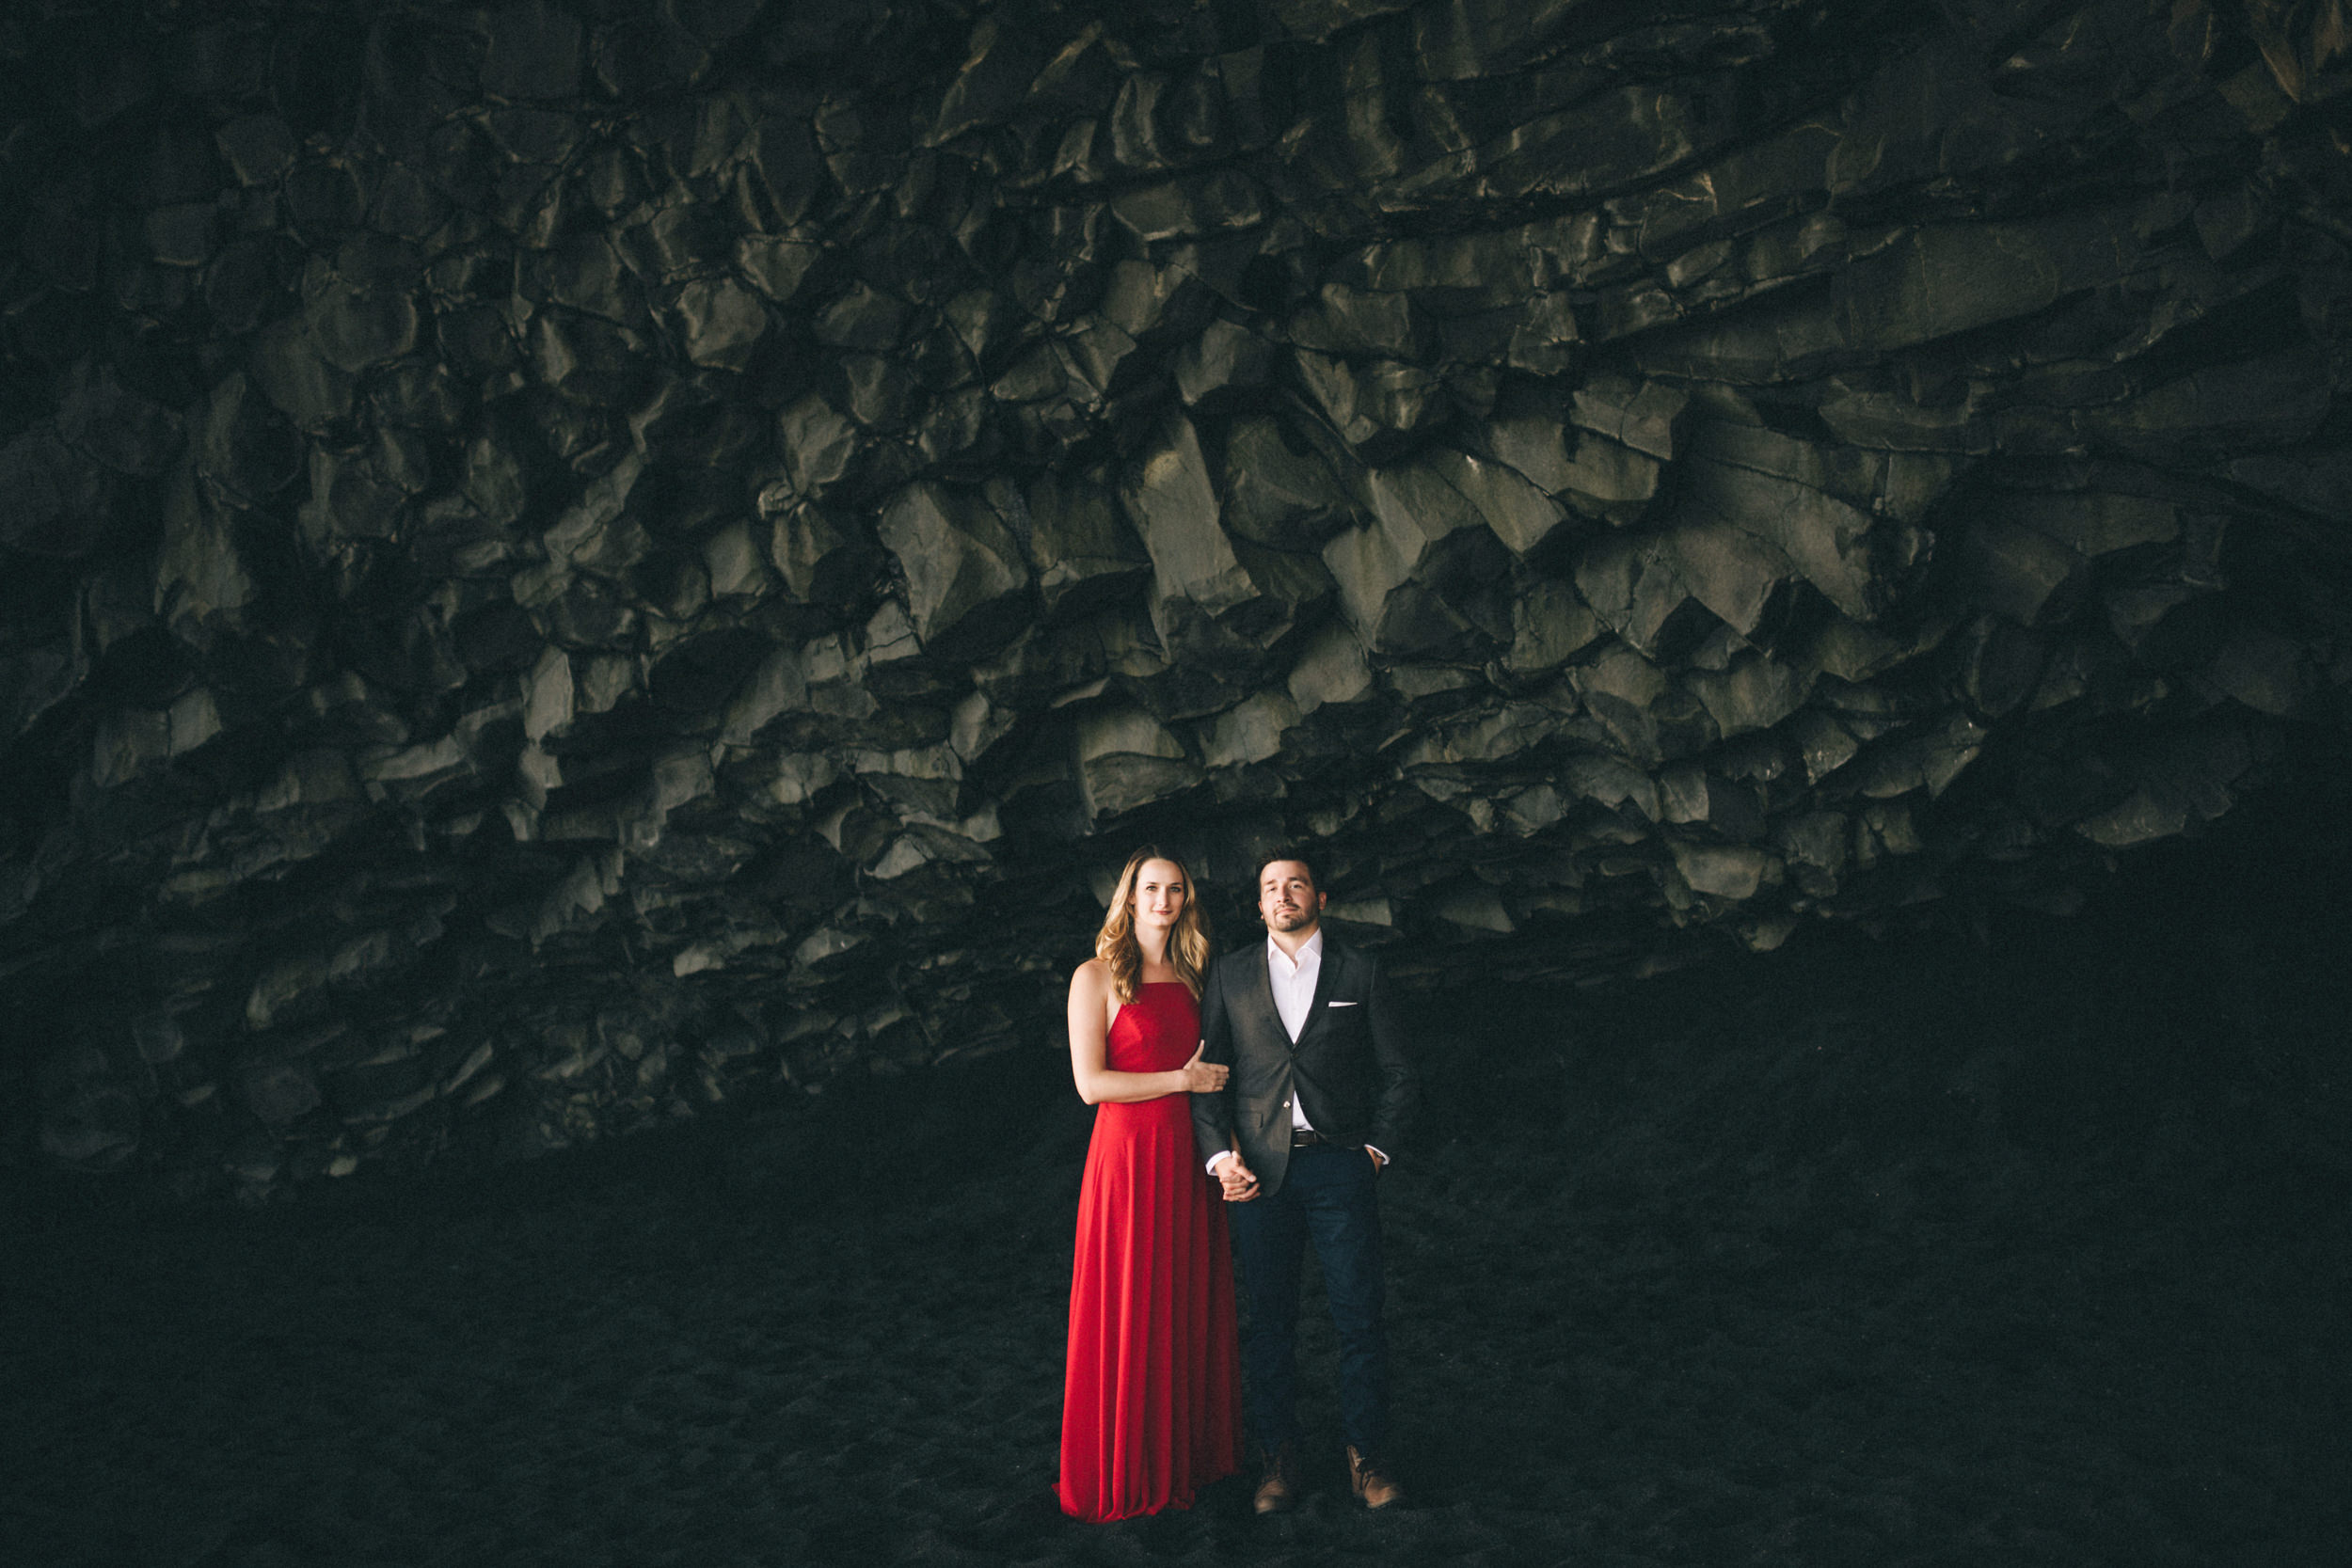 Sarah-Katherine-Davis-Photography-Iceland-Adventure-Elopement-Photographer-Louisville-Kentucky-Wedding-Photographer-Travel-Vik-Beach-Engagement-Session-Red-Dress-Reynisfjara-10edit.jpg